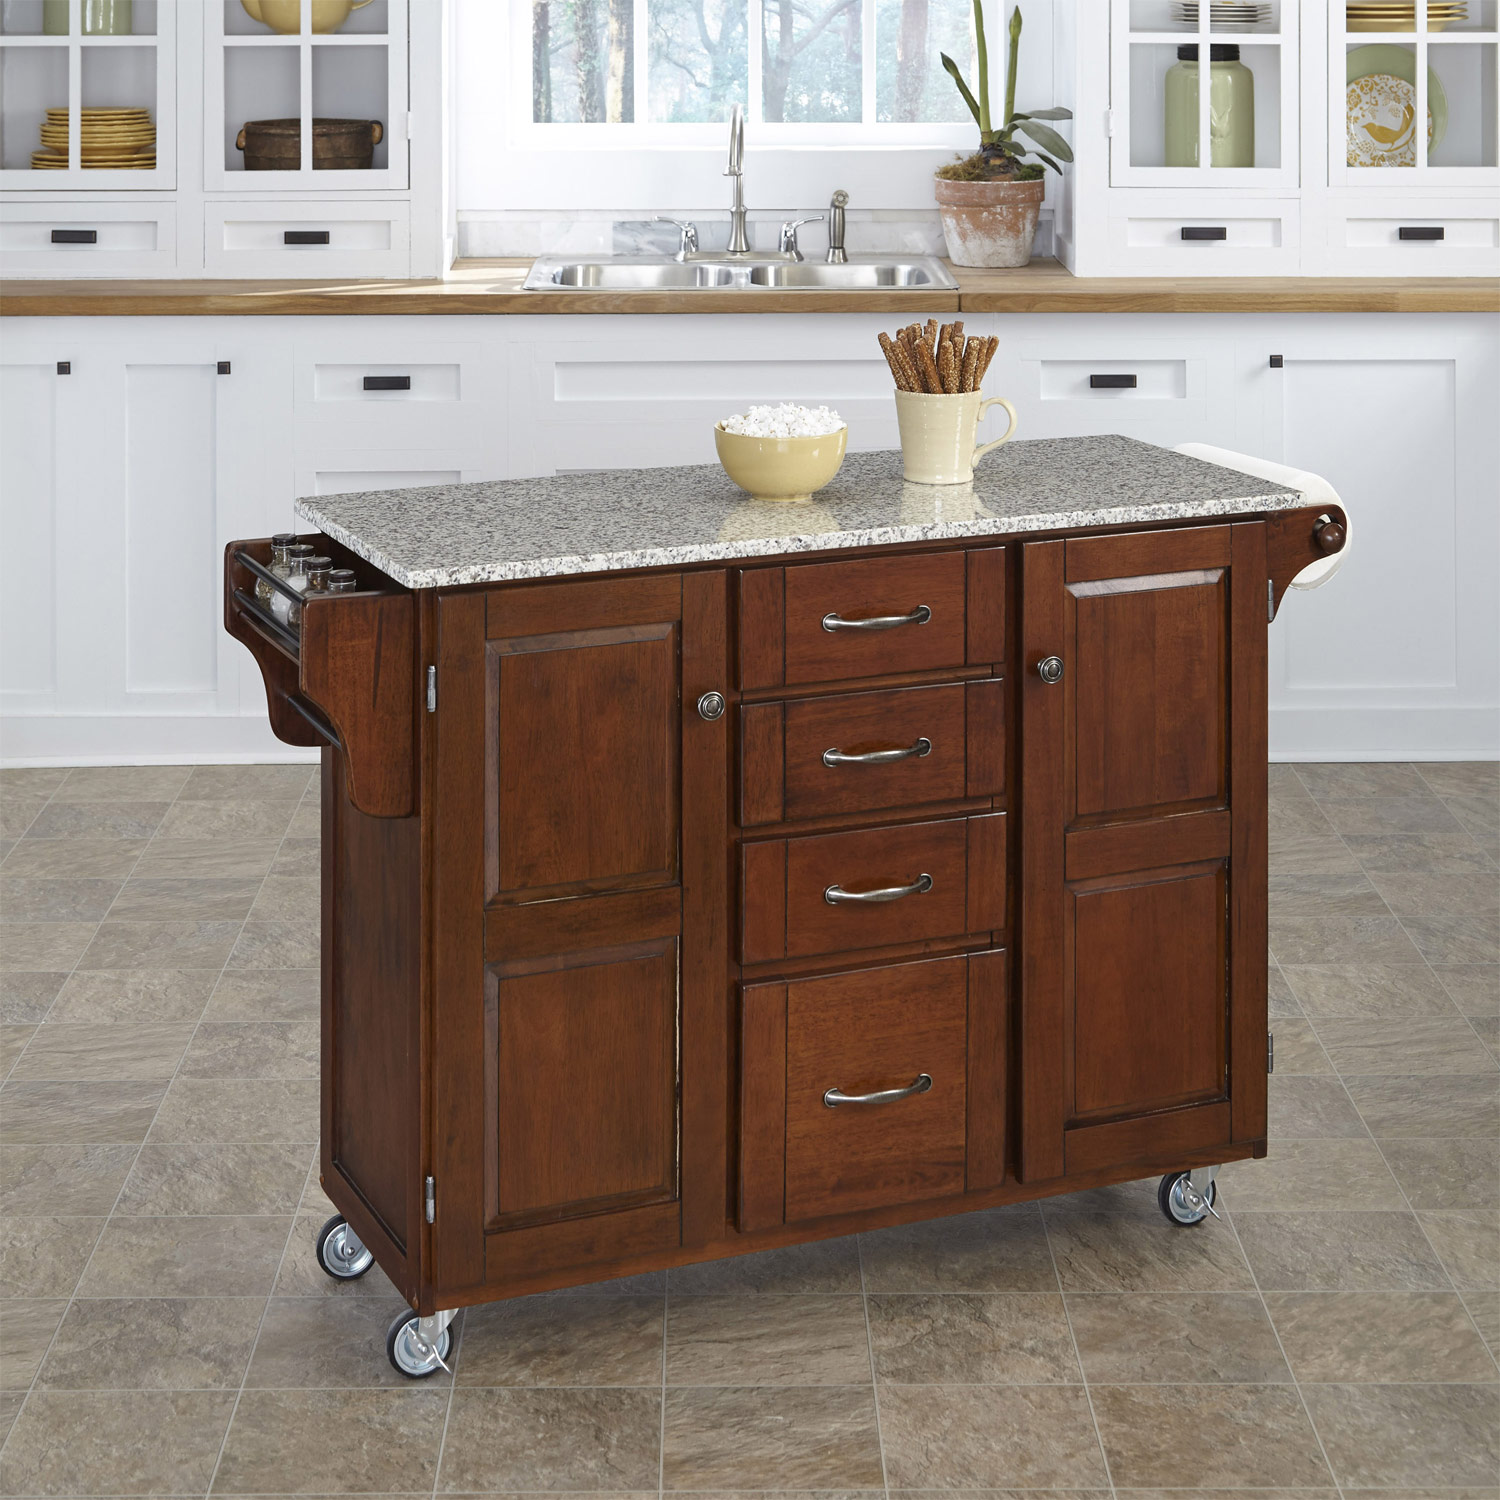 Home Styles Create-A-Cart SP Granite Top - Cherry